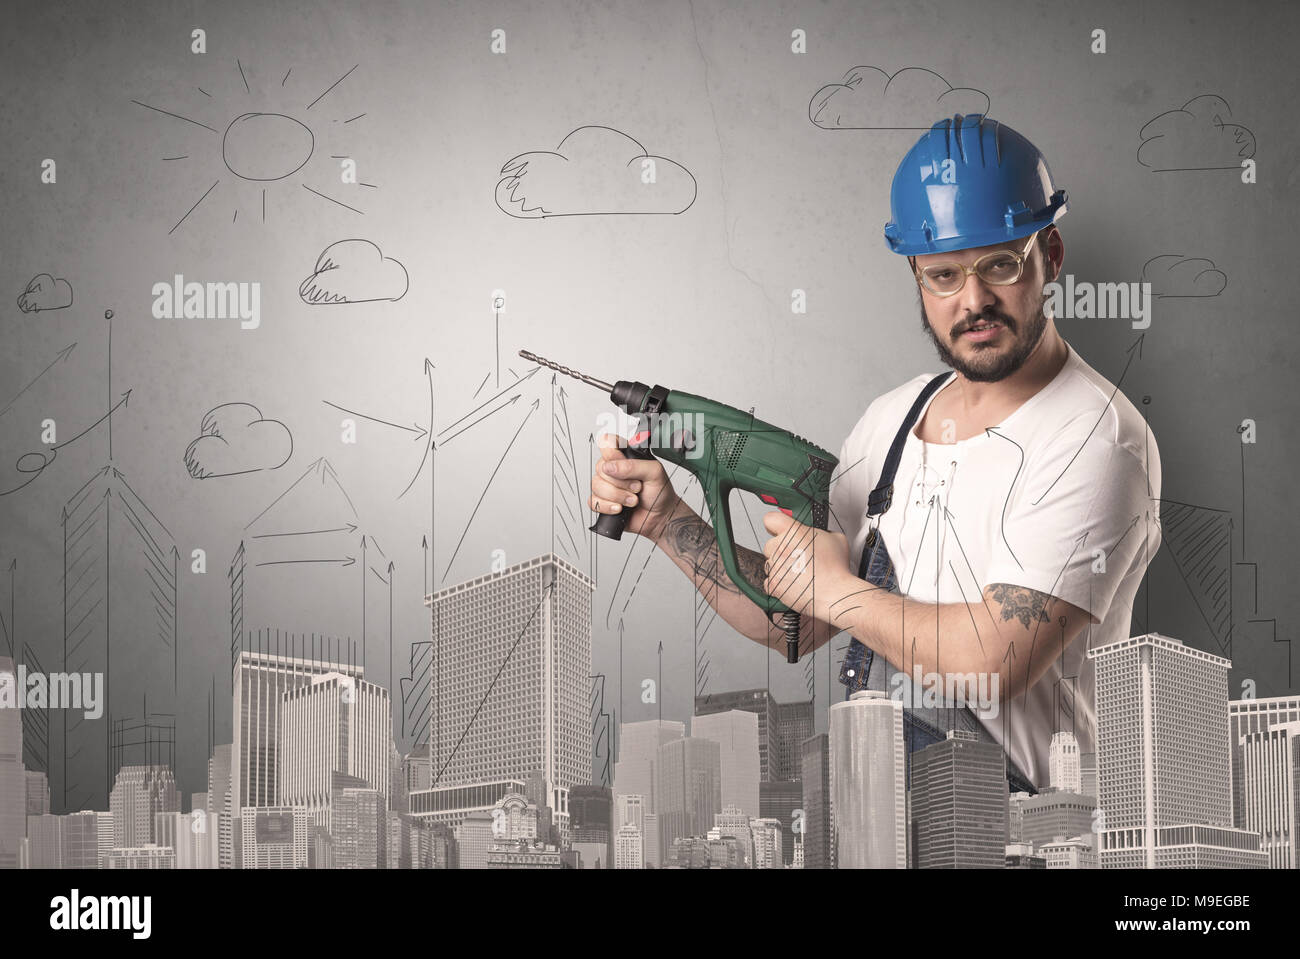 Handyman with tool in his hand and cityscape nearby. Stock Photo